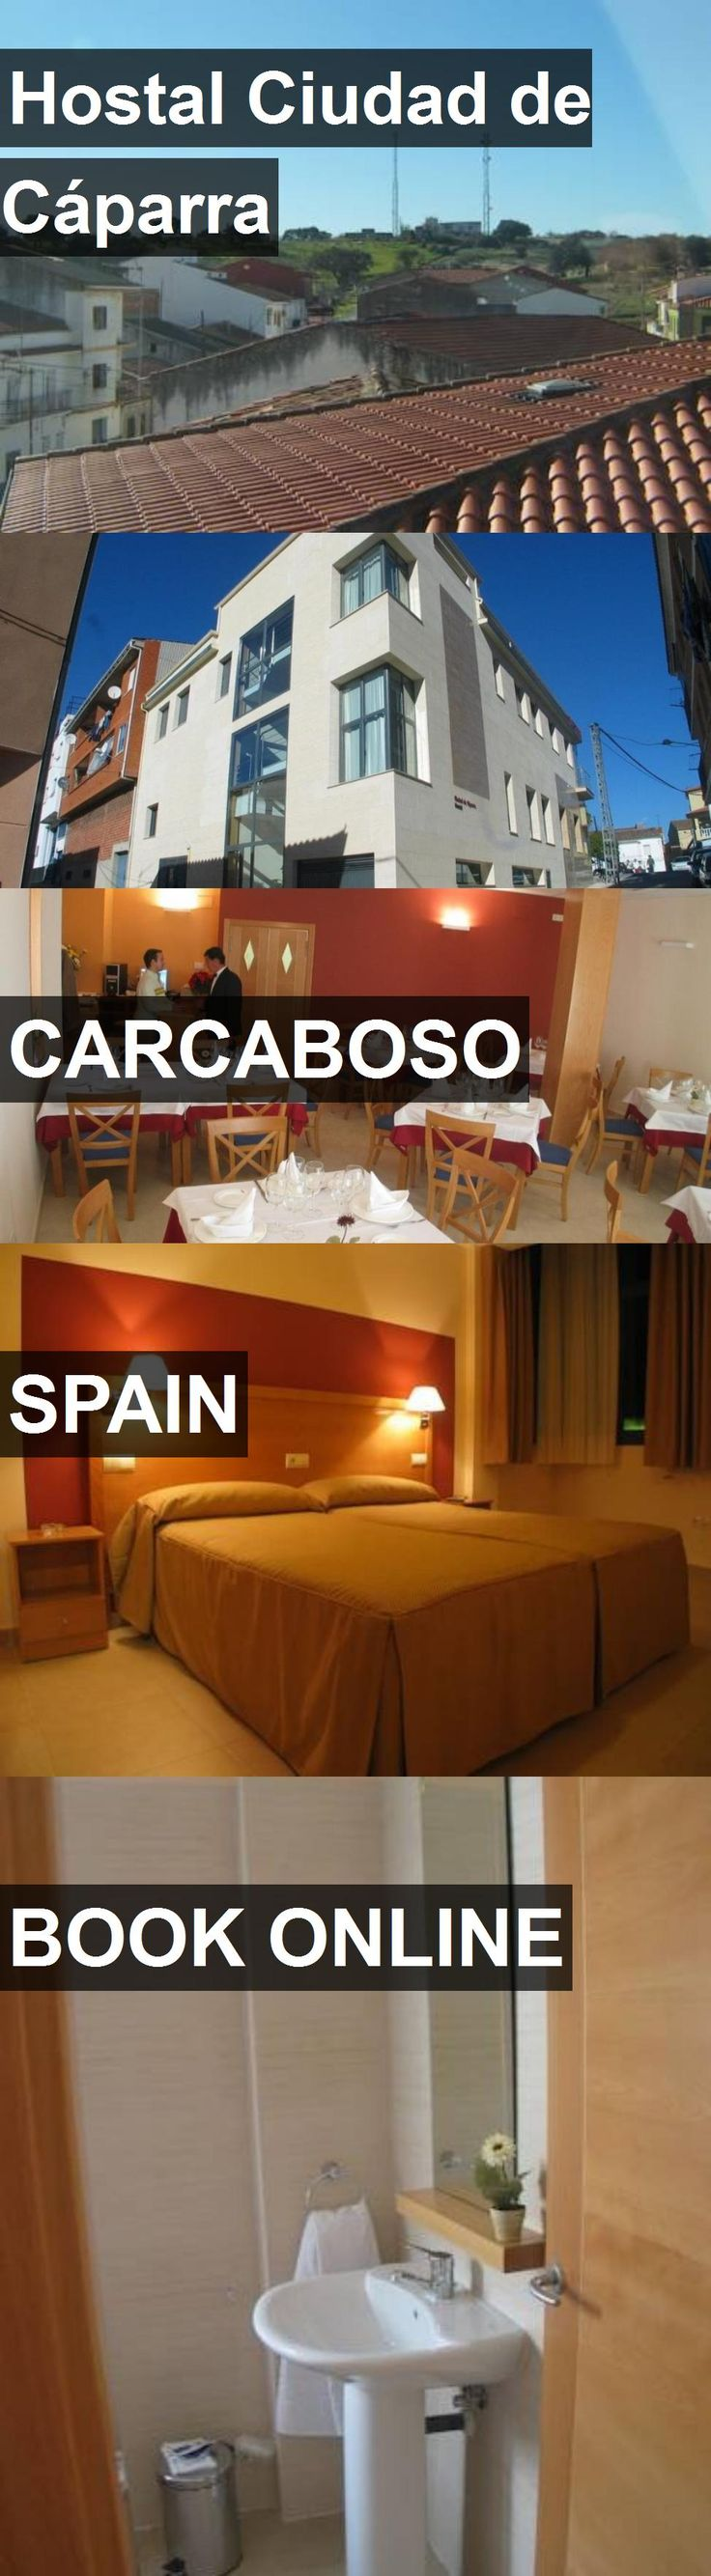 Hotel Hostal Ciudad de Cáparra in Carcaboso, Spain. For more information, photos, reviews and best prices please follow the link. #Spain #Carcaboso #hotel #travel #vacation